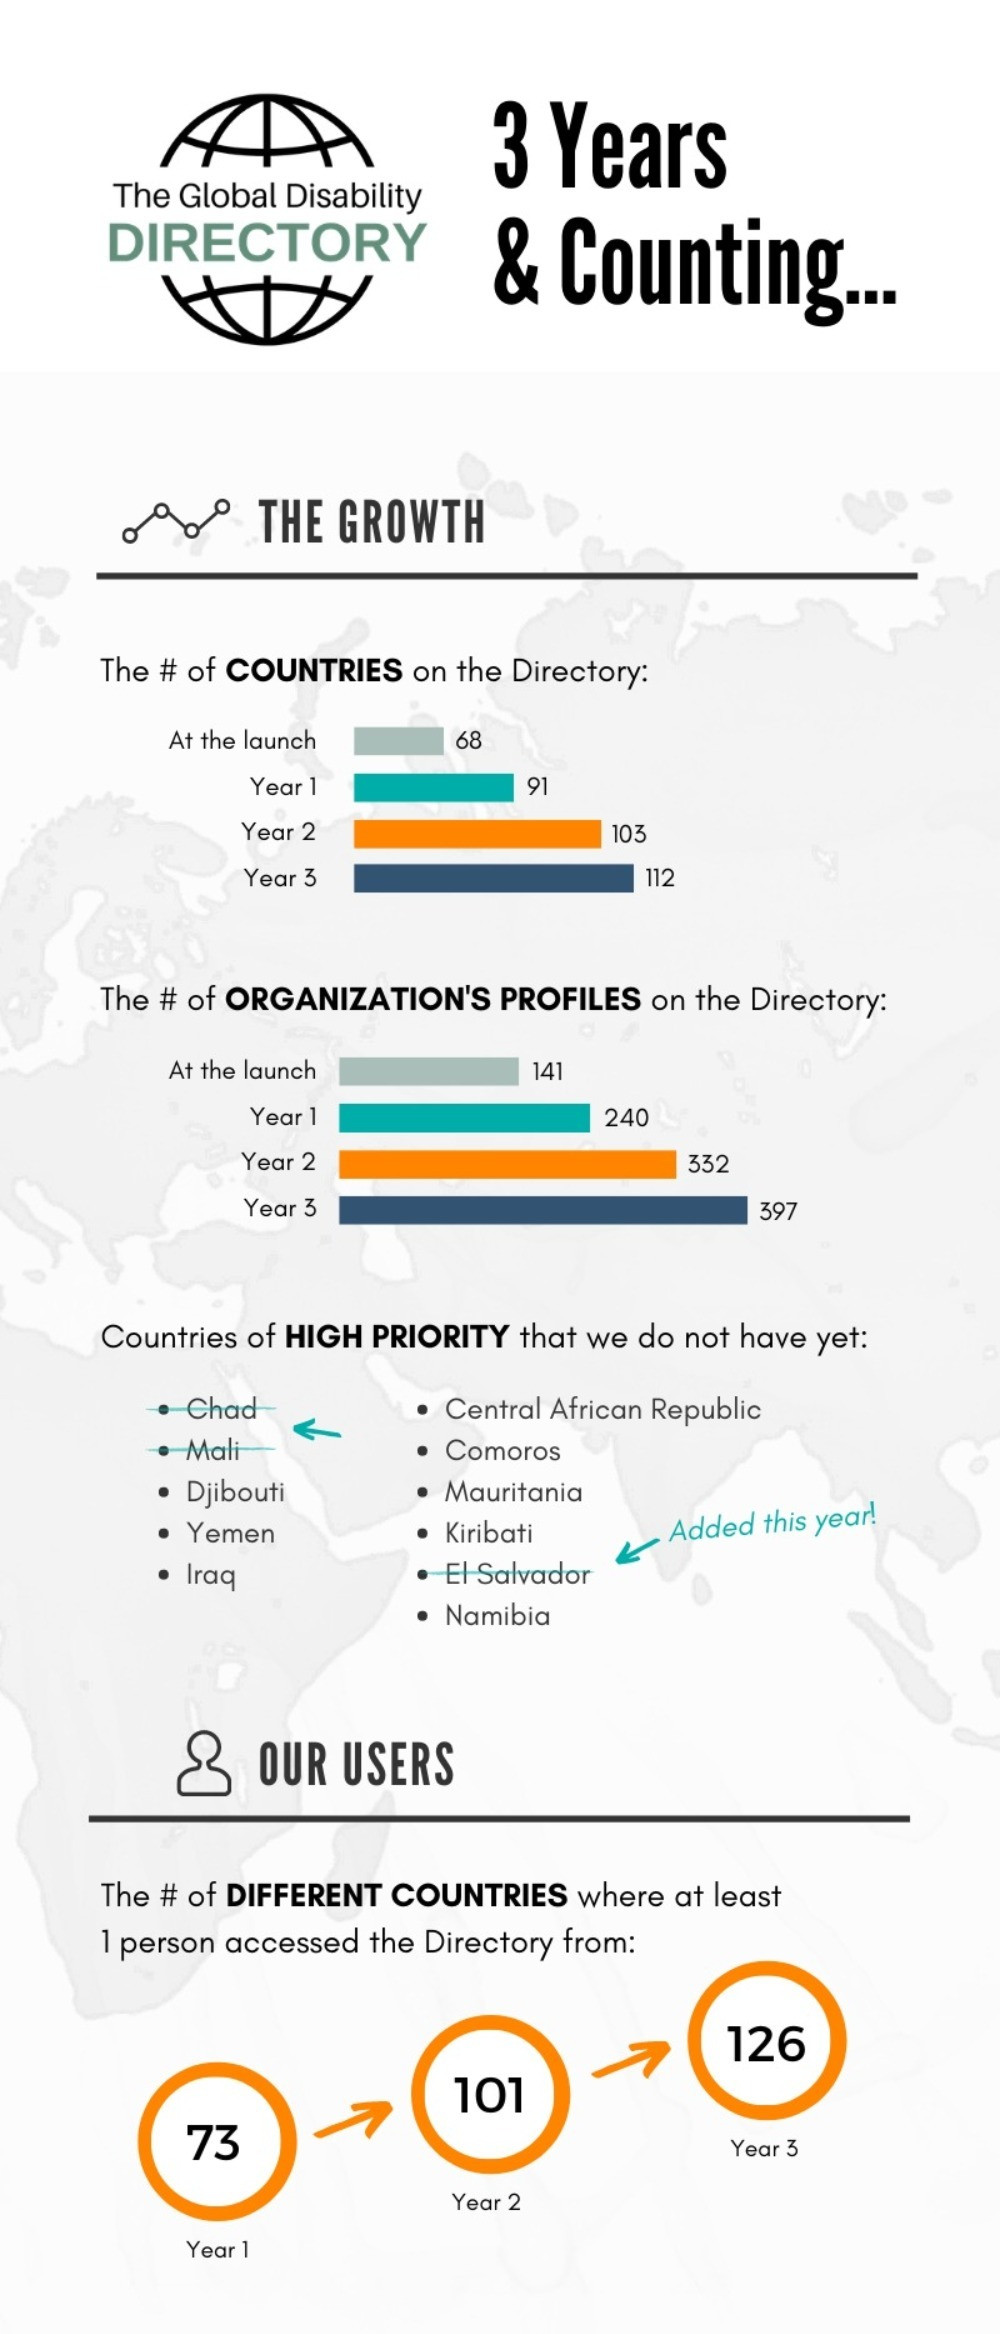 Infographic part 1 with information about the Directory's growth, currently including 112 countries and 397 organization's profiles